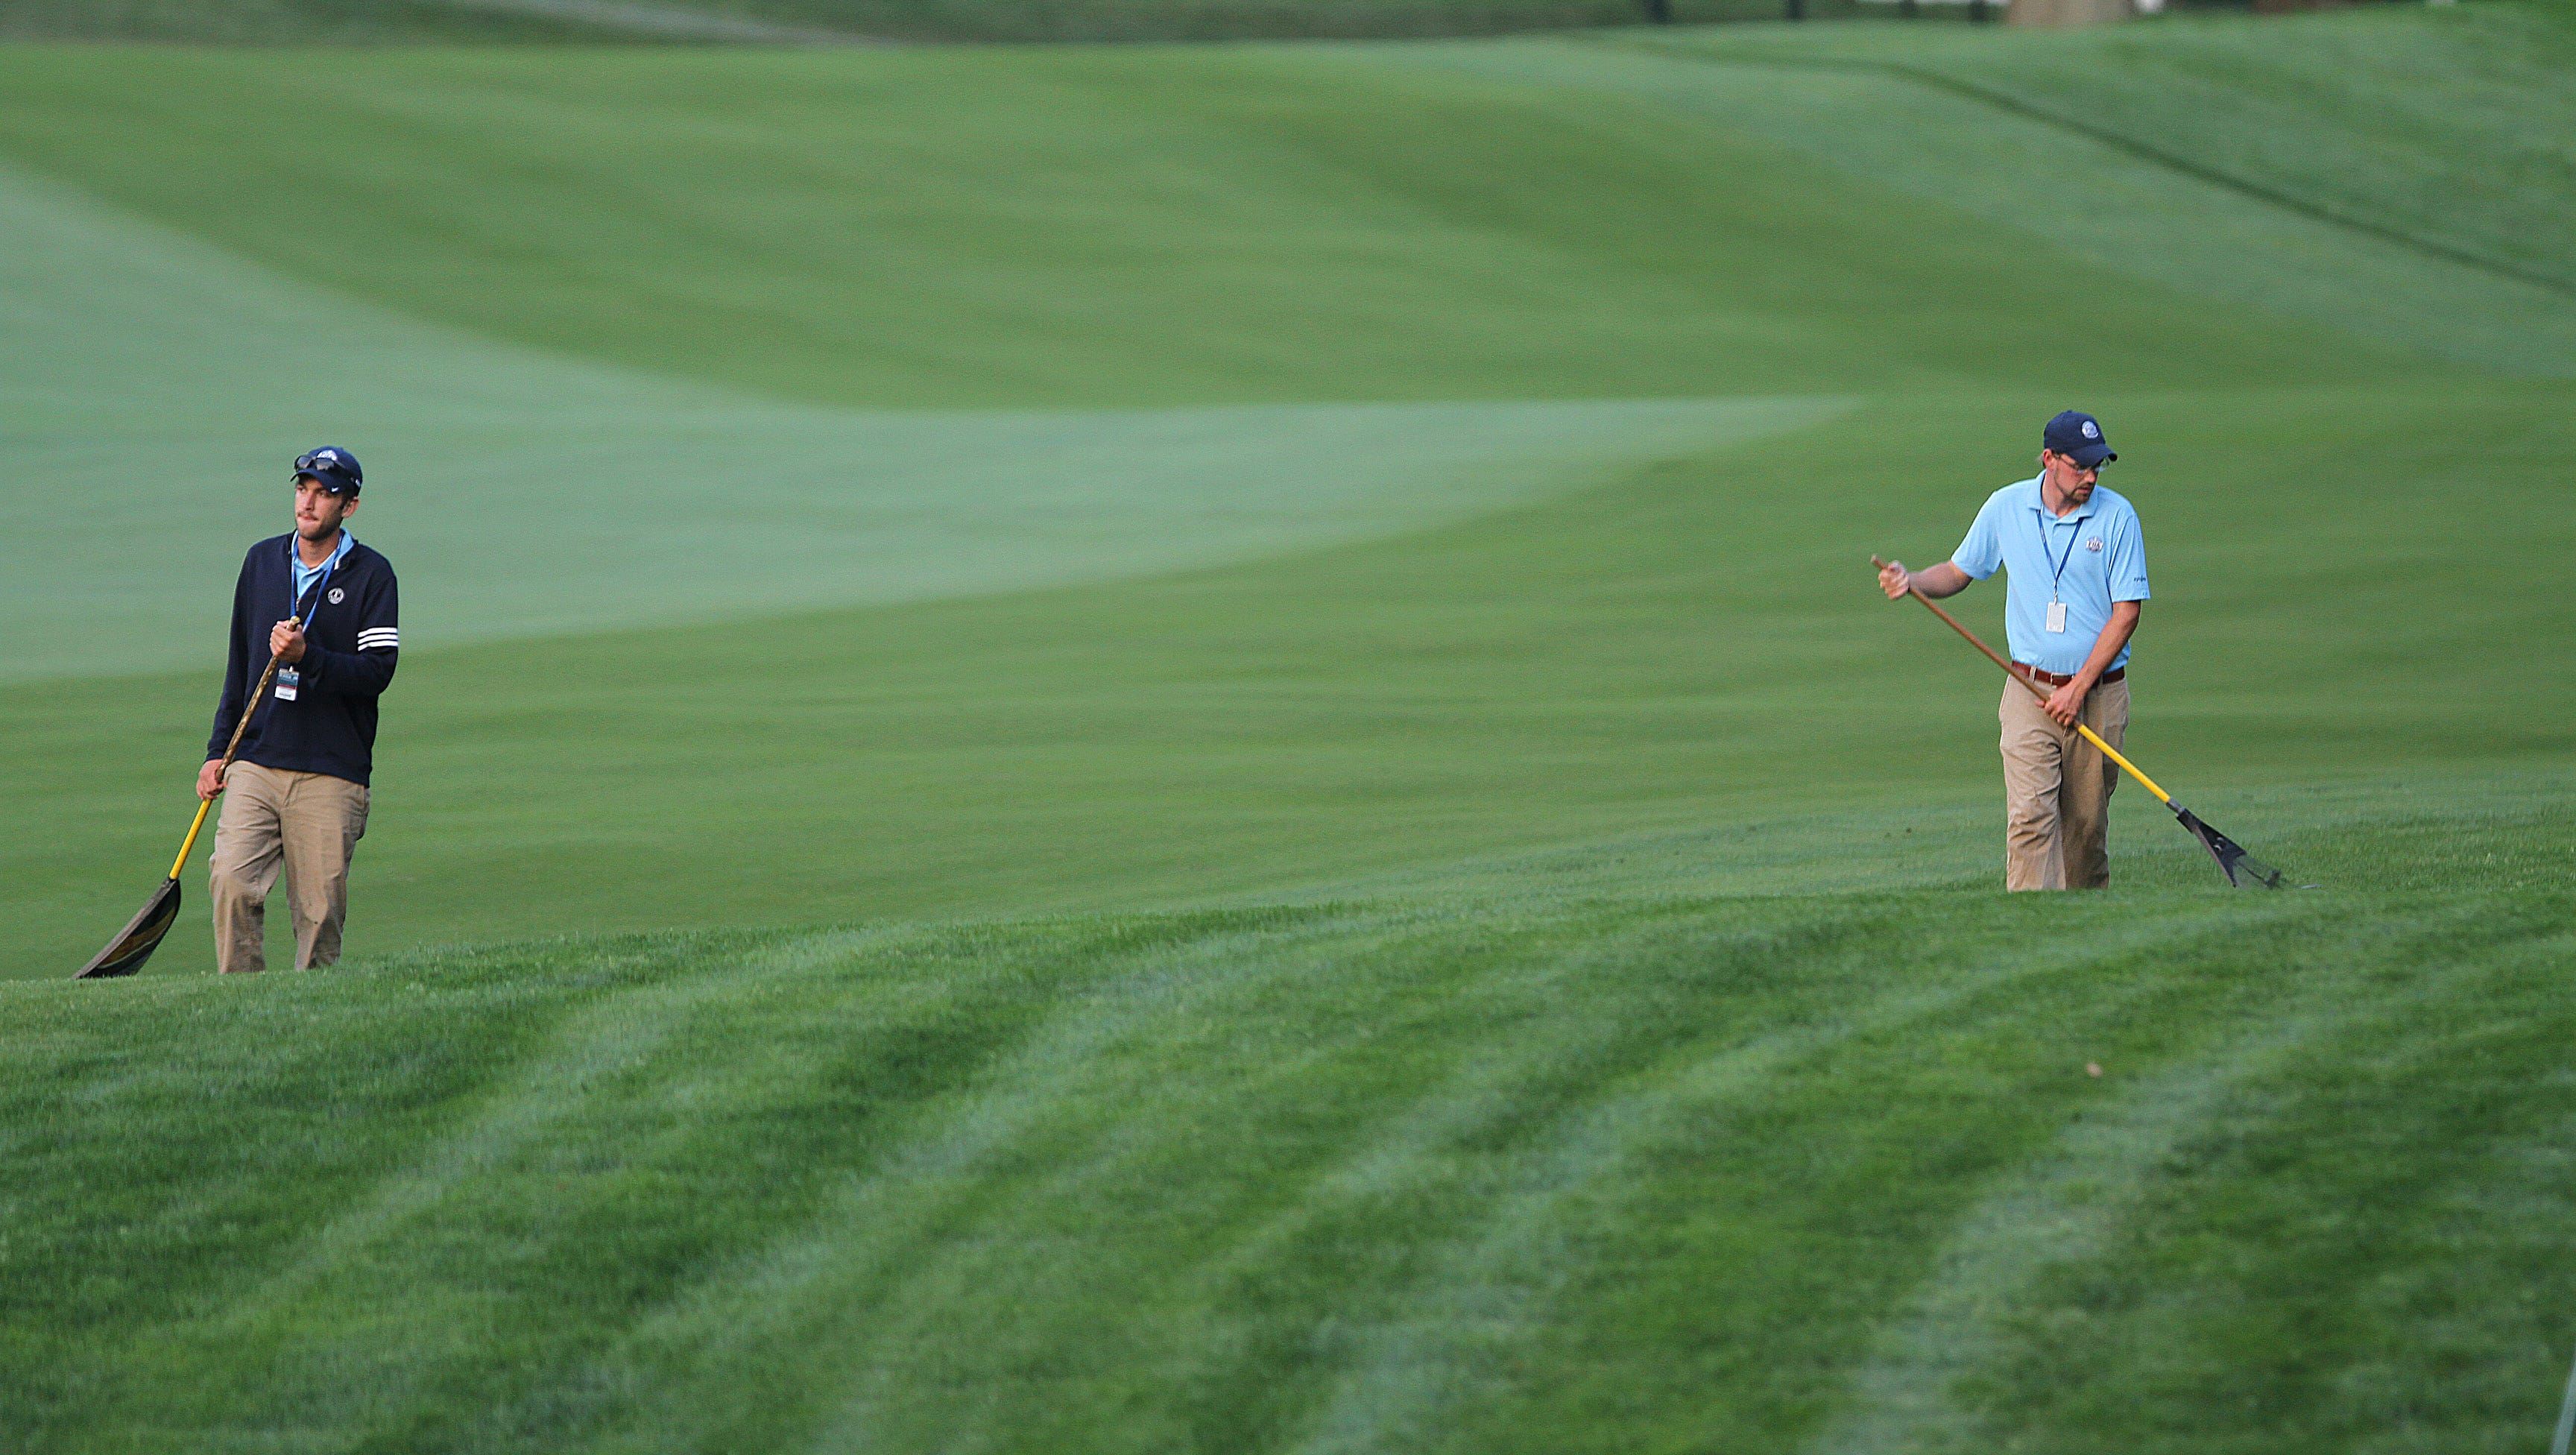 Matt Giermak of Chicago, IL and bDennis Alexander of Chili groom 18 before the players arrived for their practice rounds Wednesday.